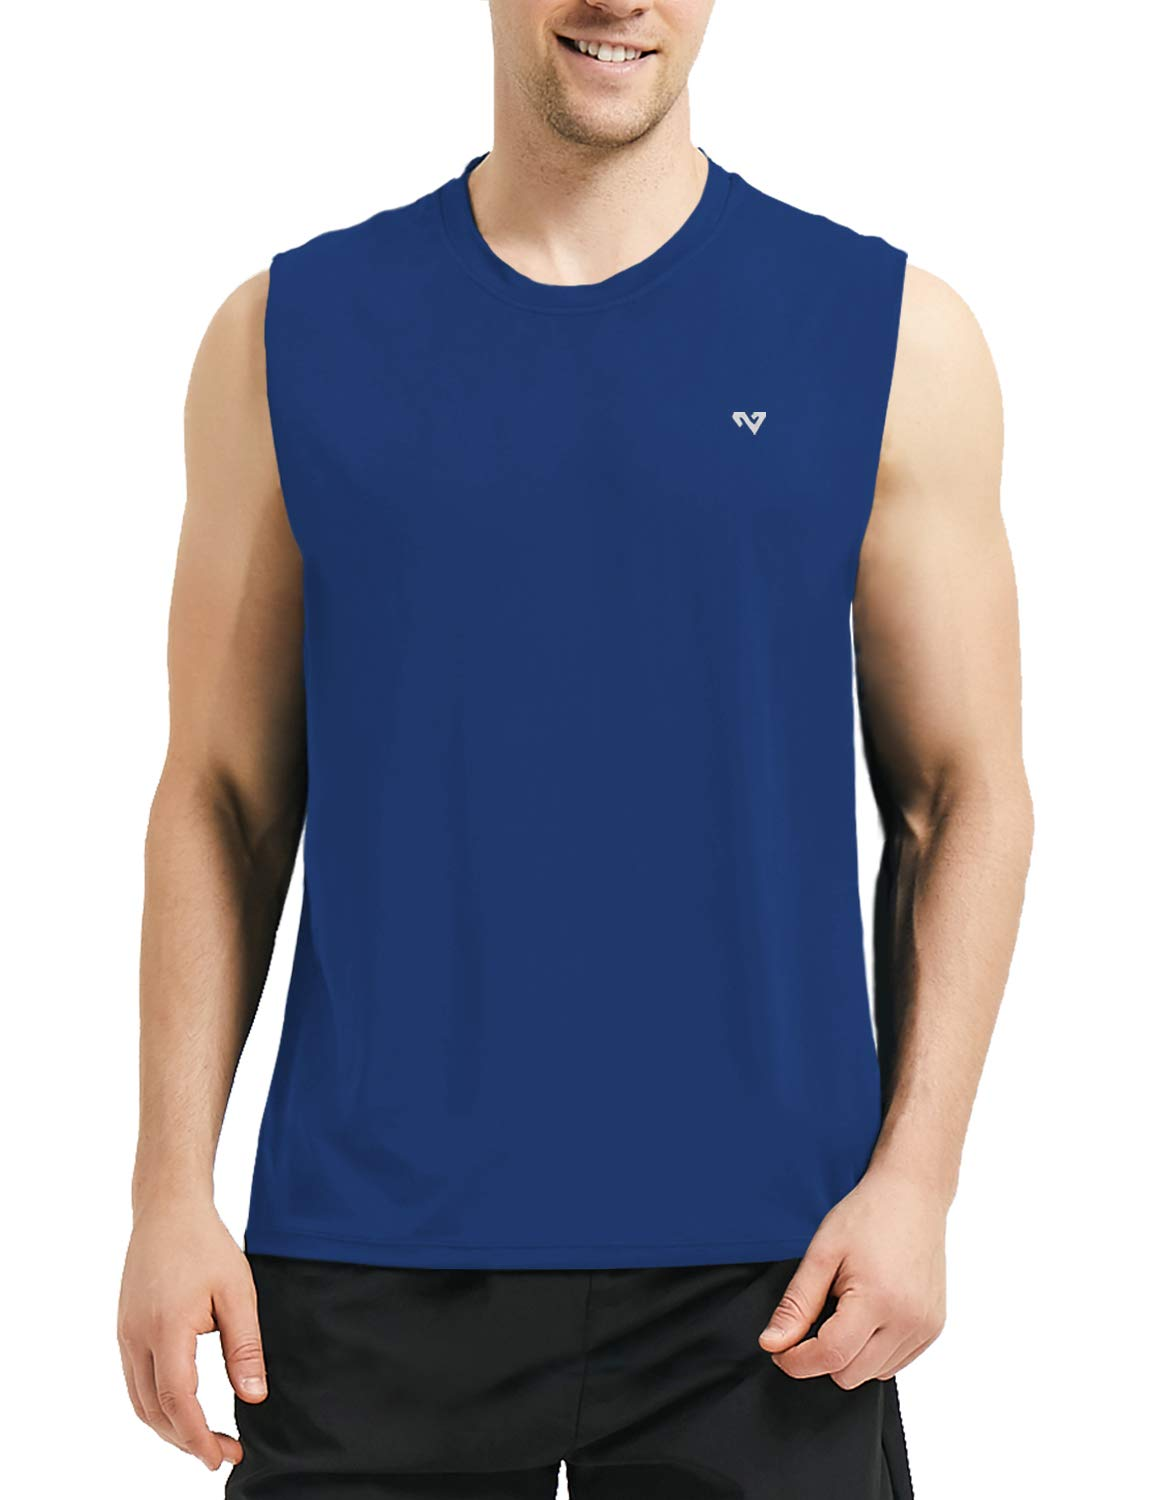 Roadbox Men's Performance Sleeveless Workout Muscle Bodybuilding Tank Tops Shirts Royal Blue by Roadbox